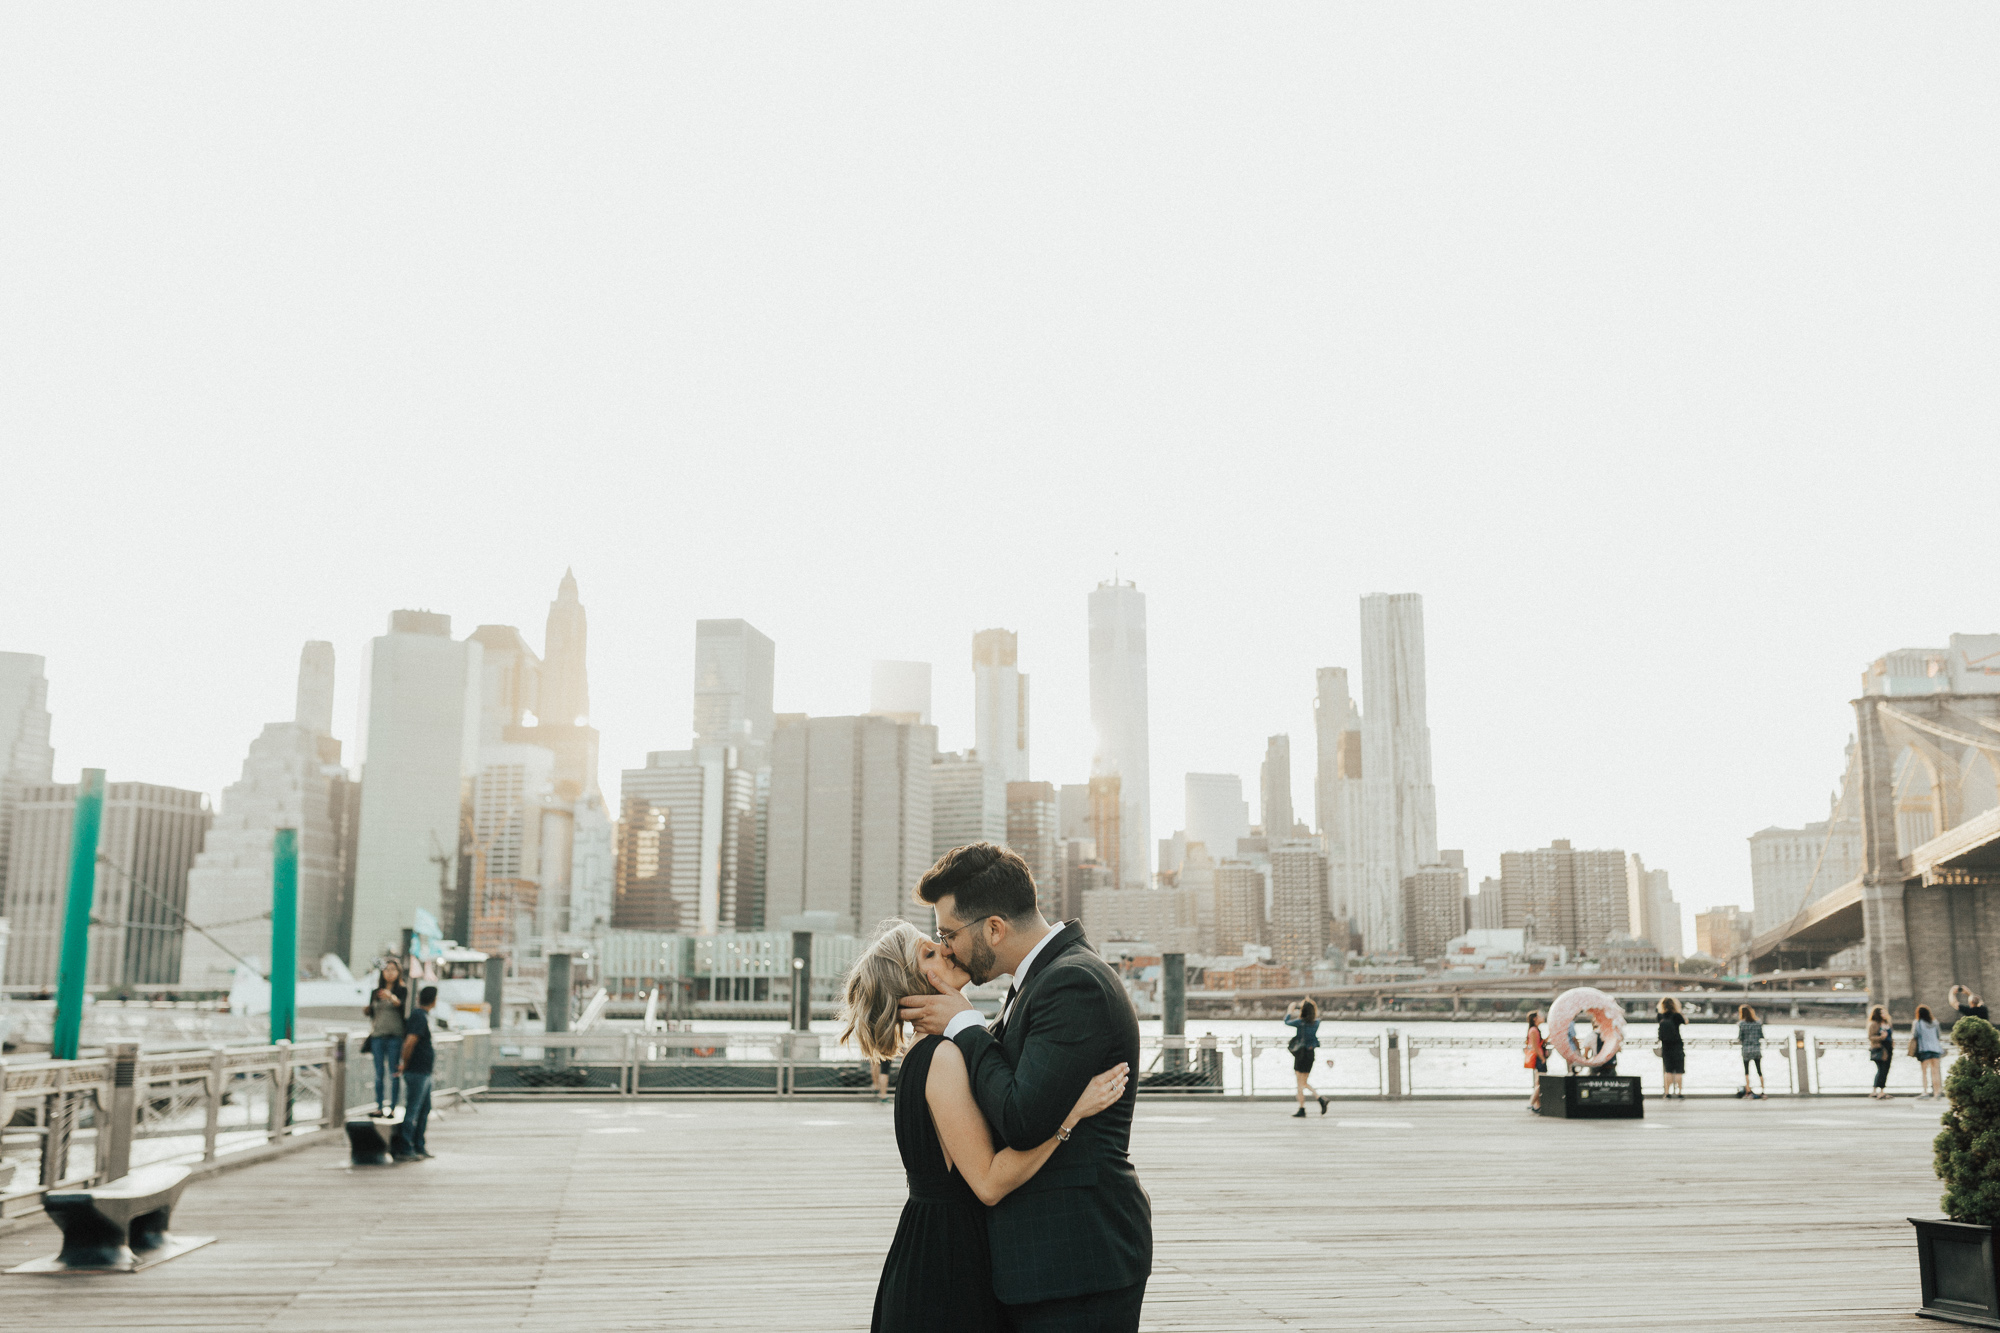 brooklyn_nyc_engagement_photography-50-of-83.jpg